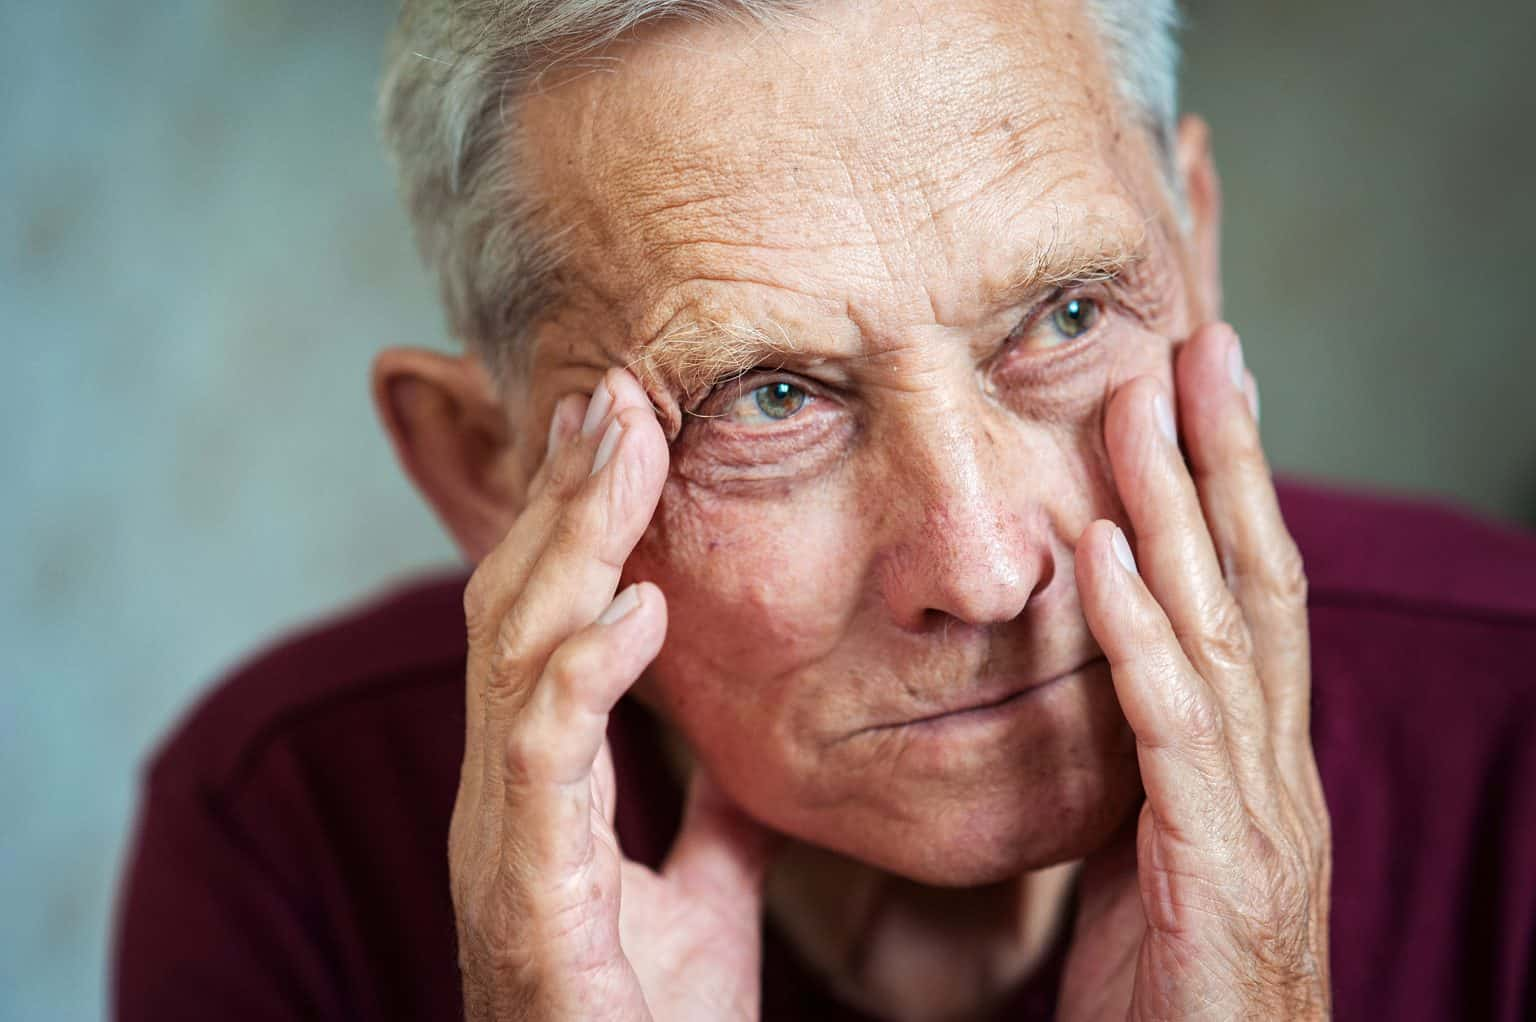 elder abuse is widespread and everyone has a role to play to put a stop to the issue